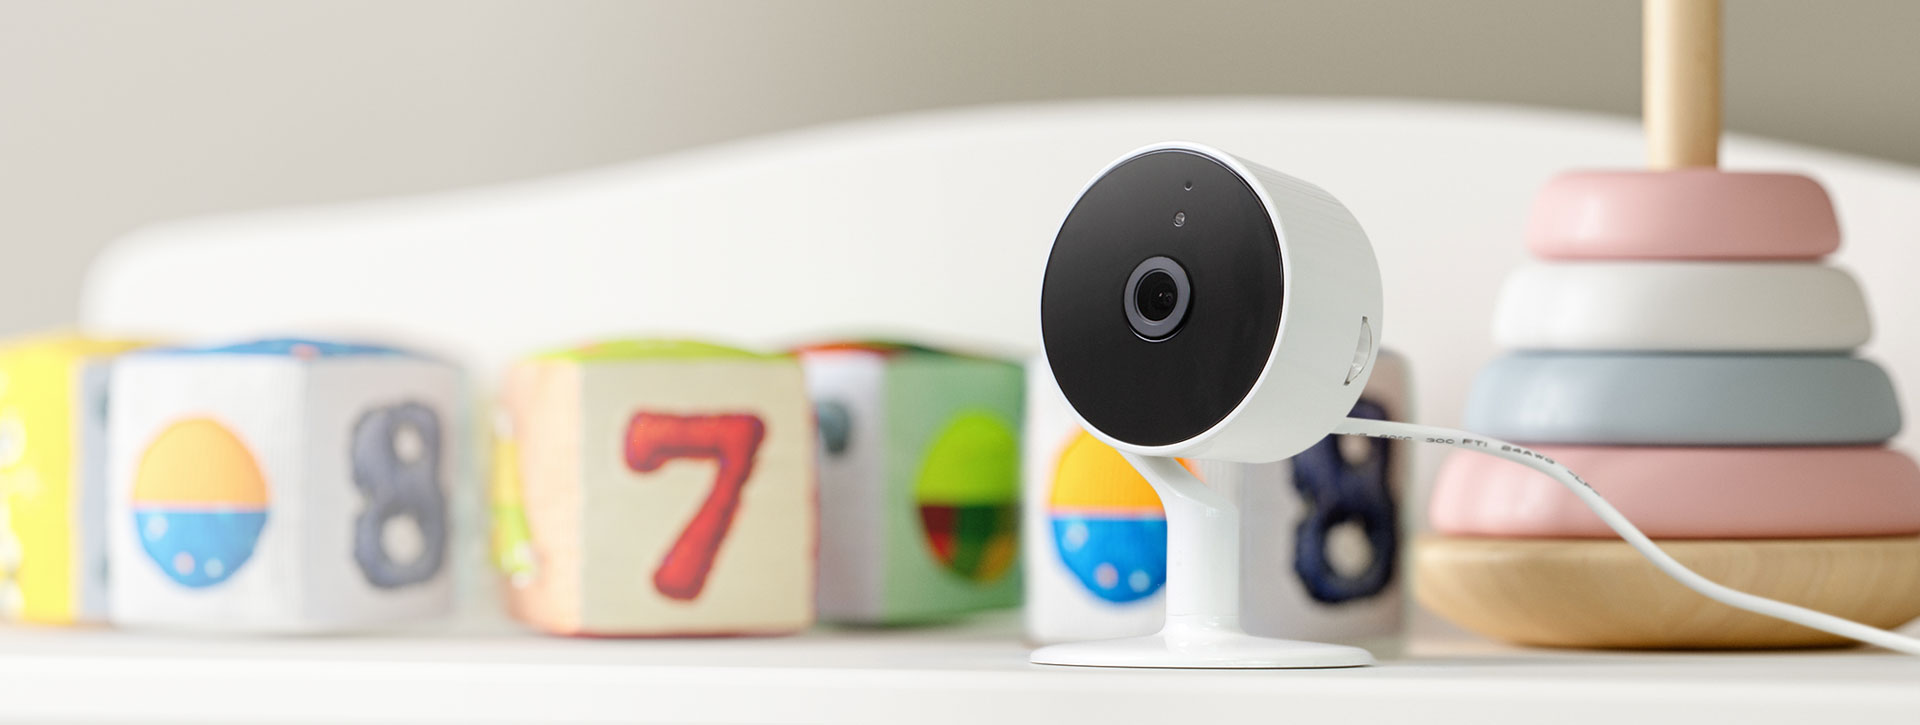 eco4life SmartHome WiFi Security Camera